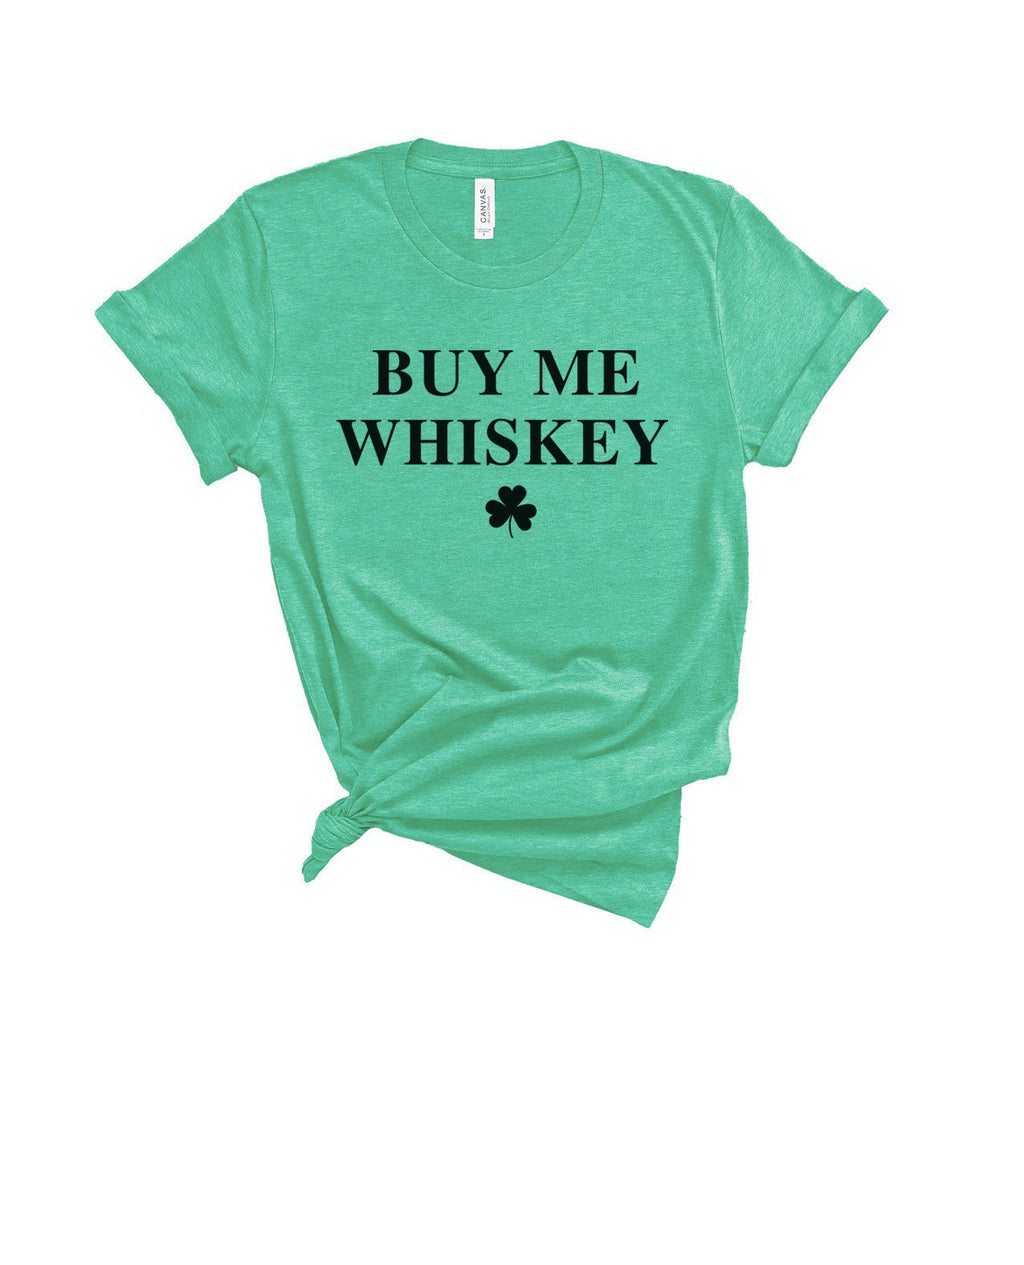 This funny St. Patrick's Day shirt is a great shirt to let people know that you love Whiskey and they need to buy you some! Enjoy some Irish whiskey in this cute St. Patty's Day shirt!